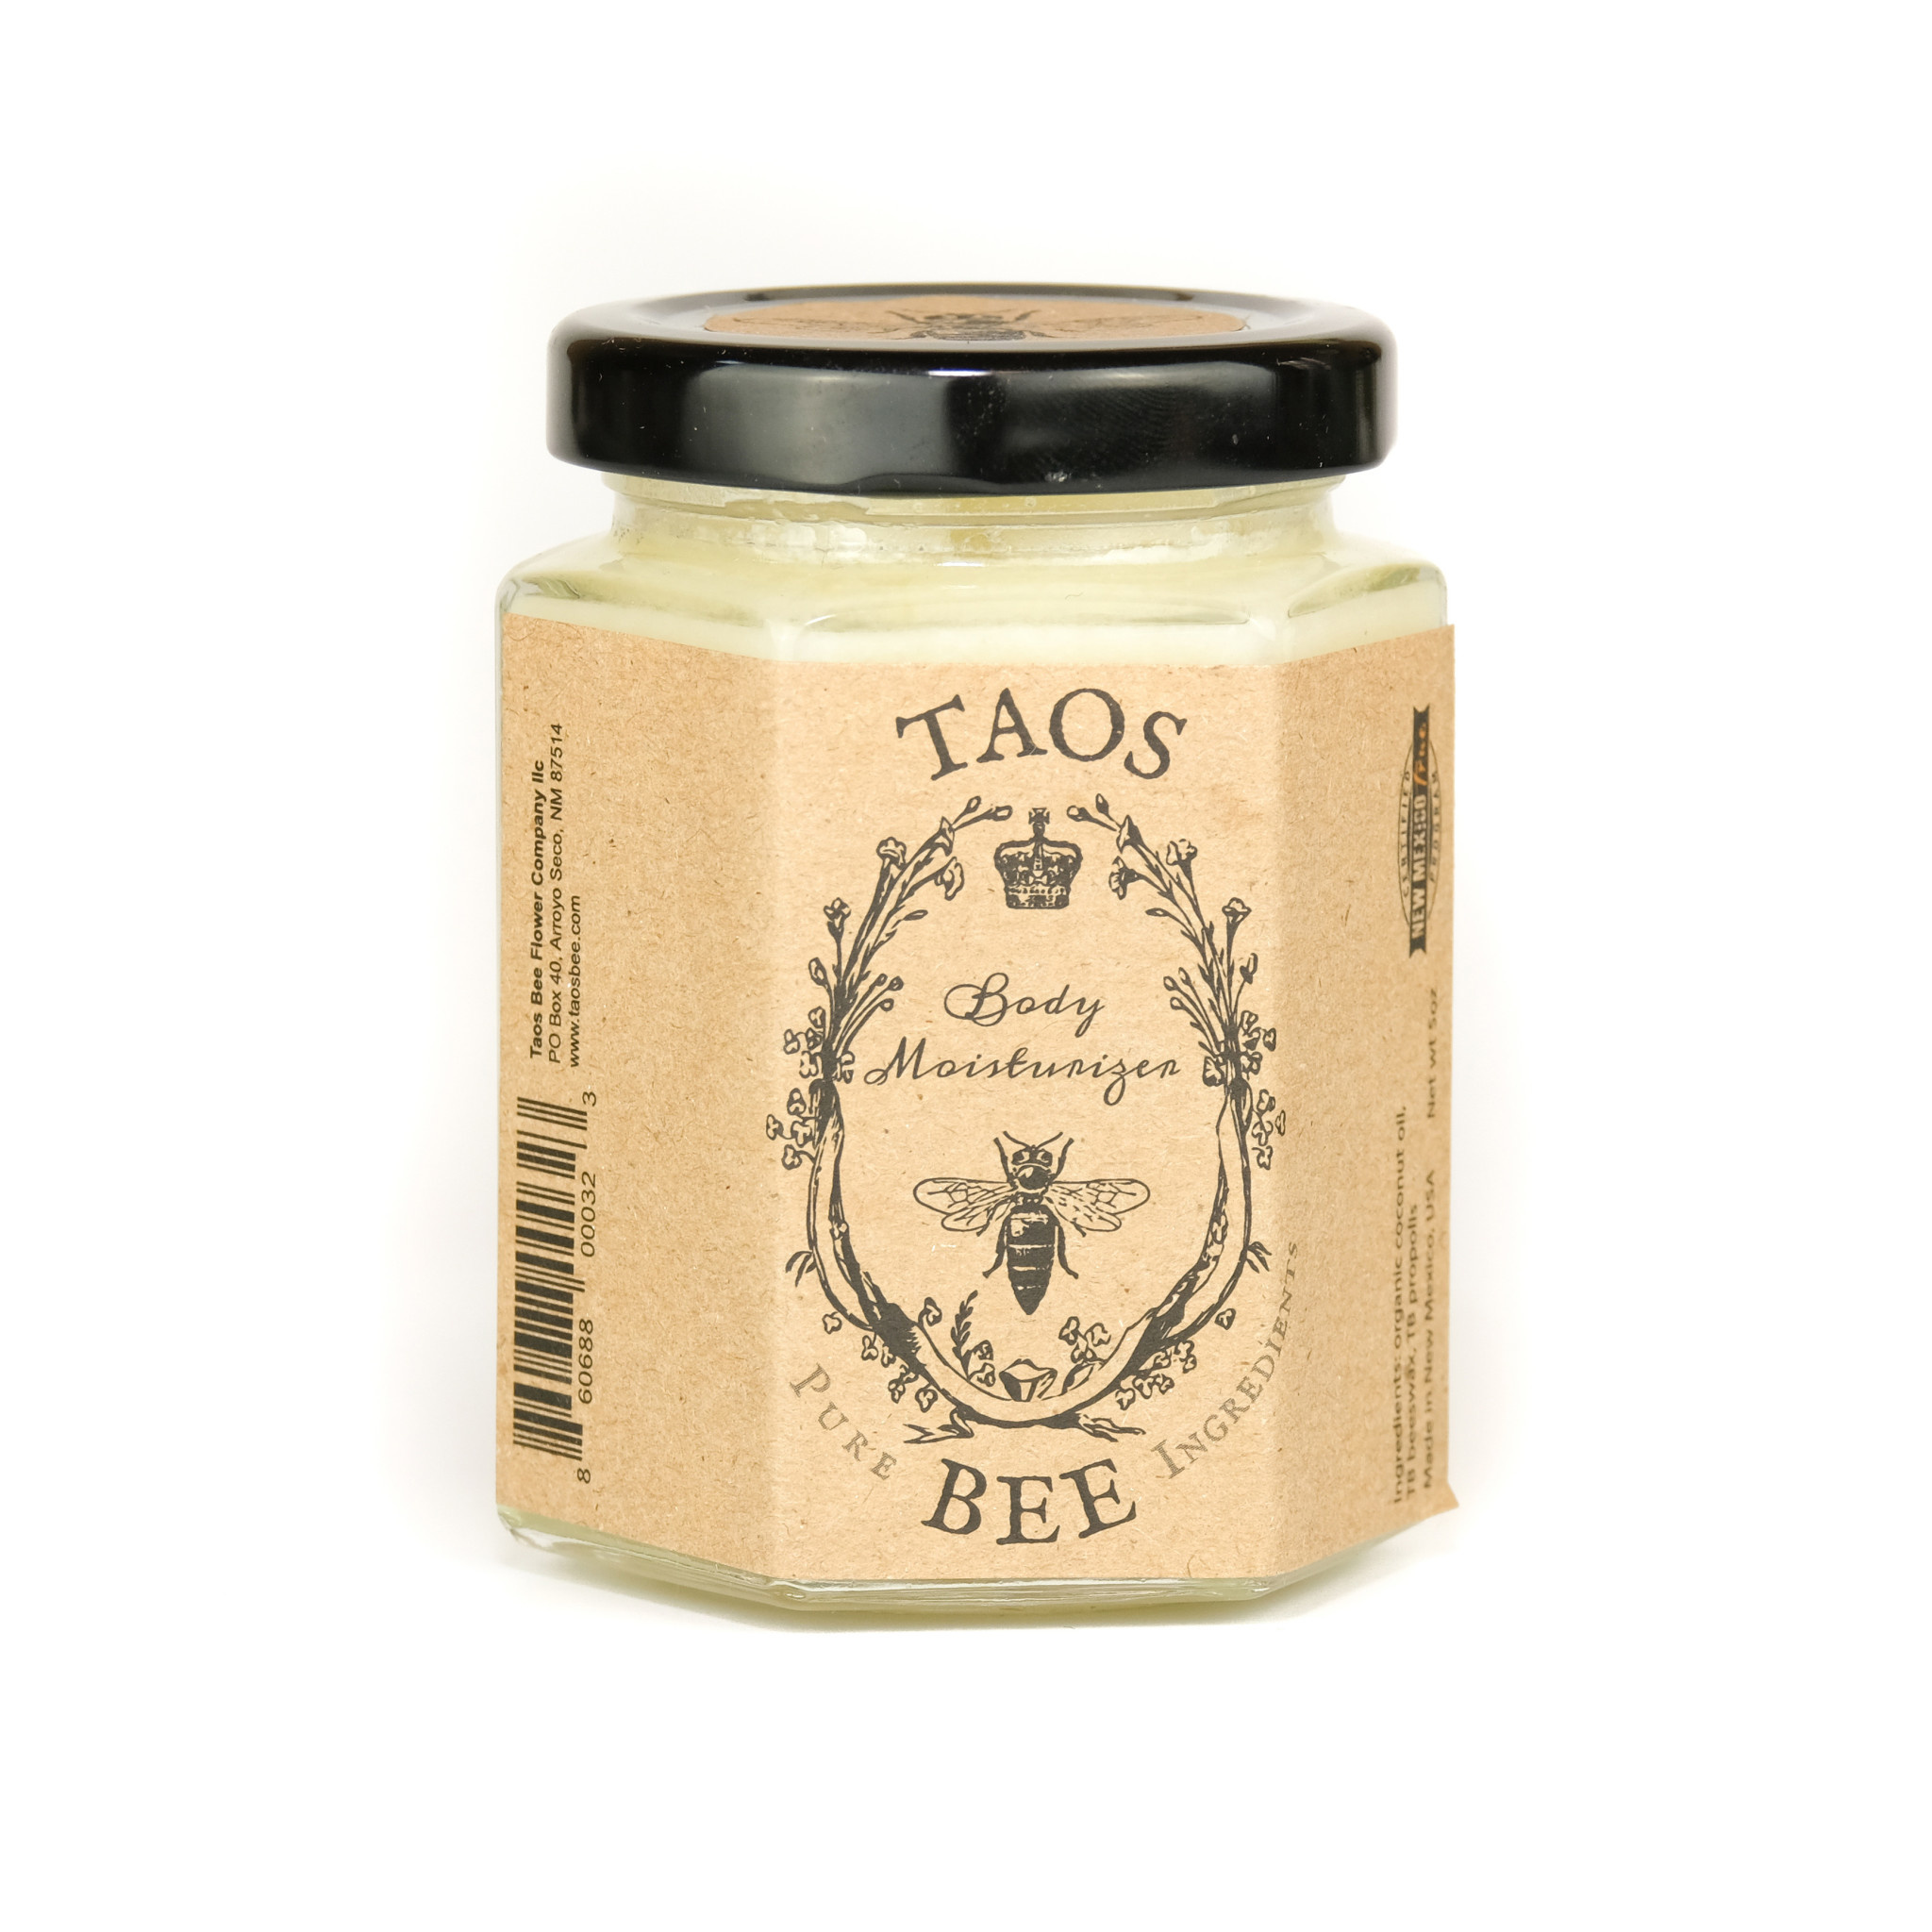 Taos Bee Body Moisturizer